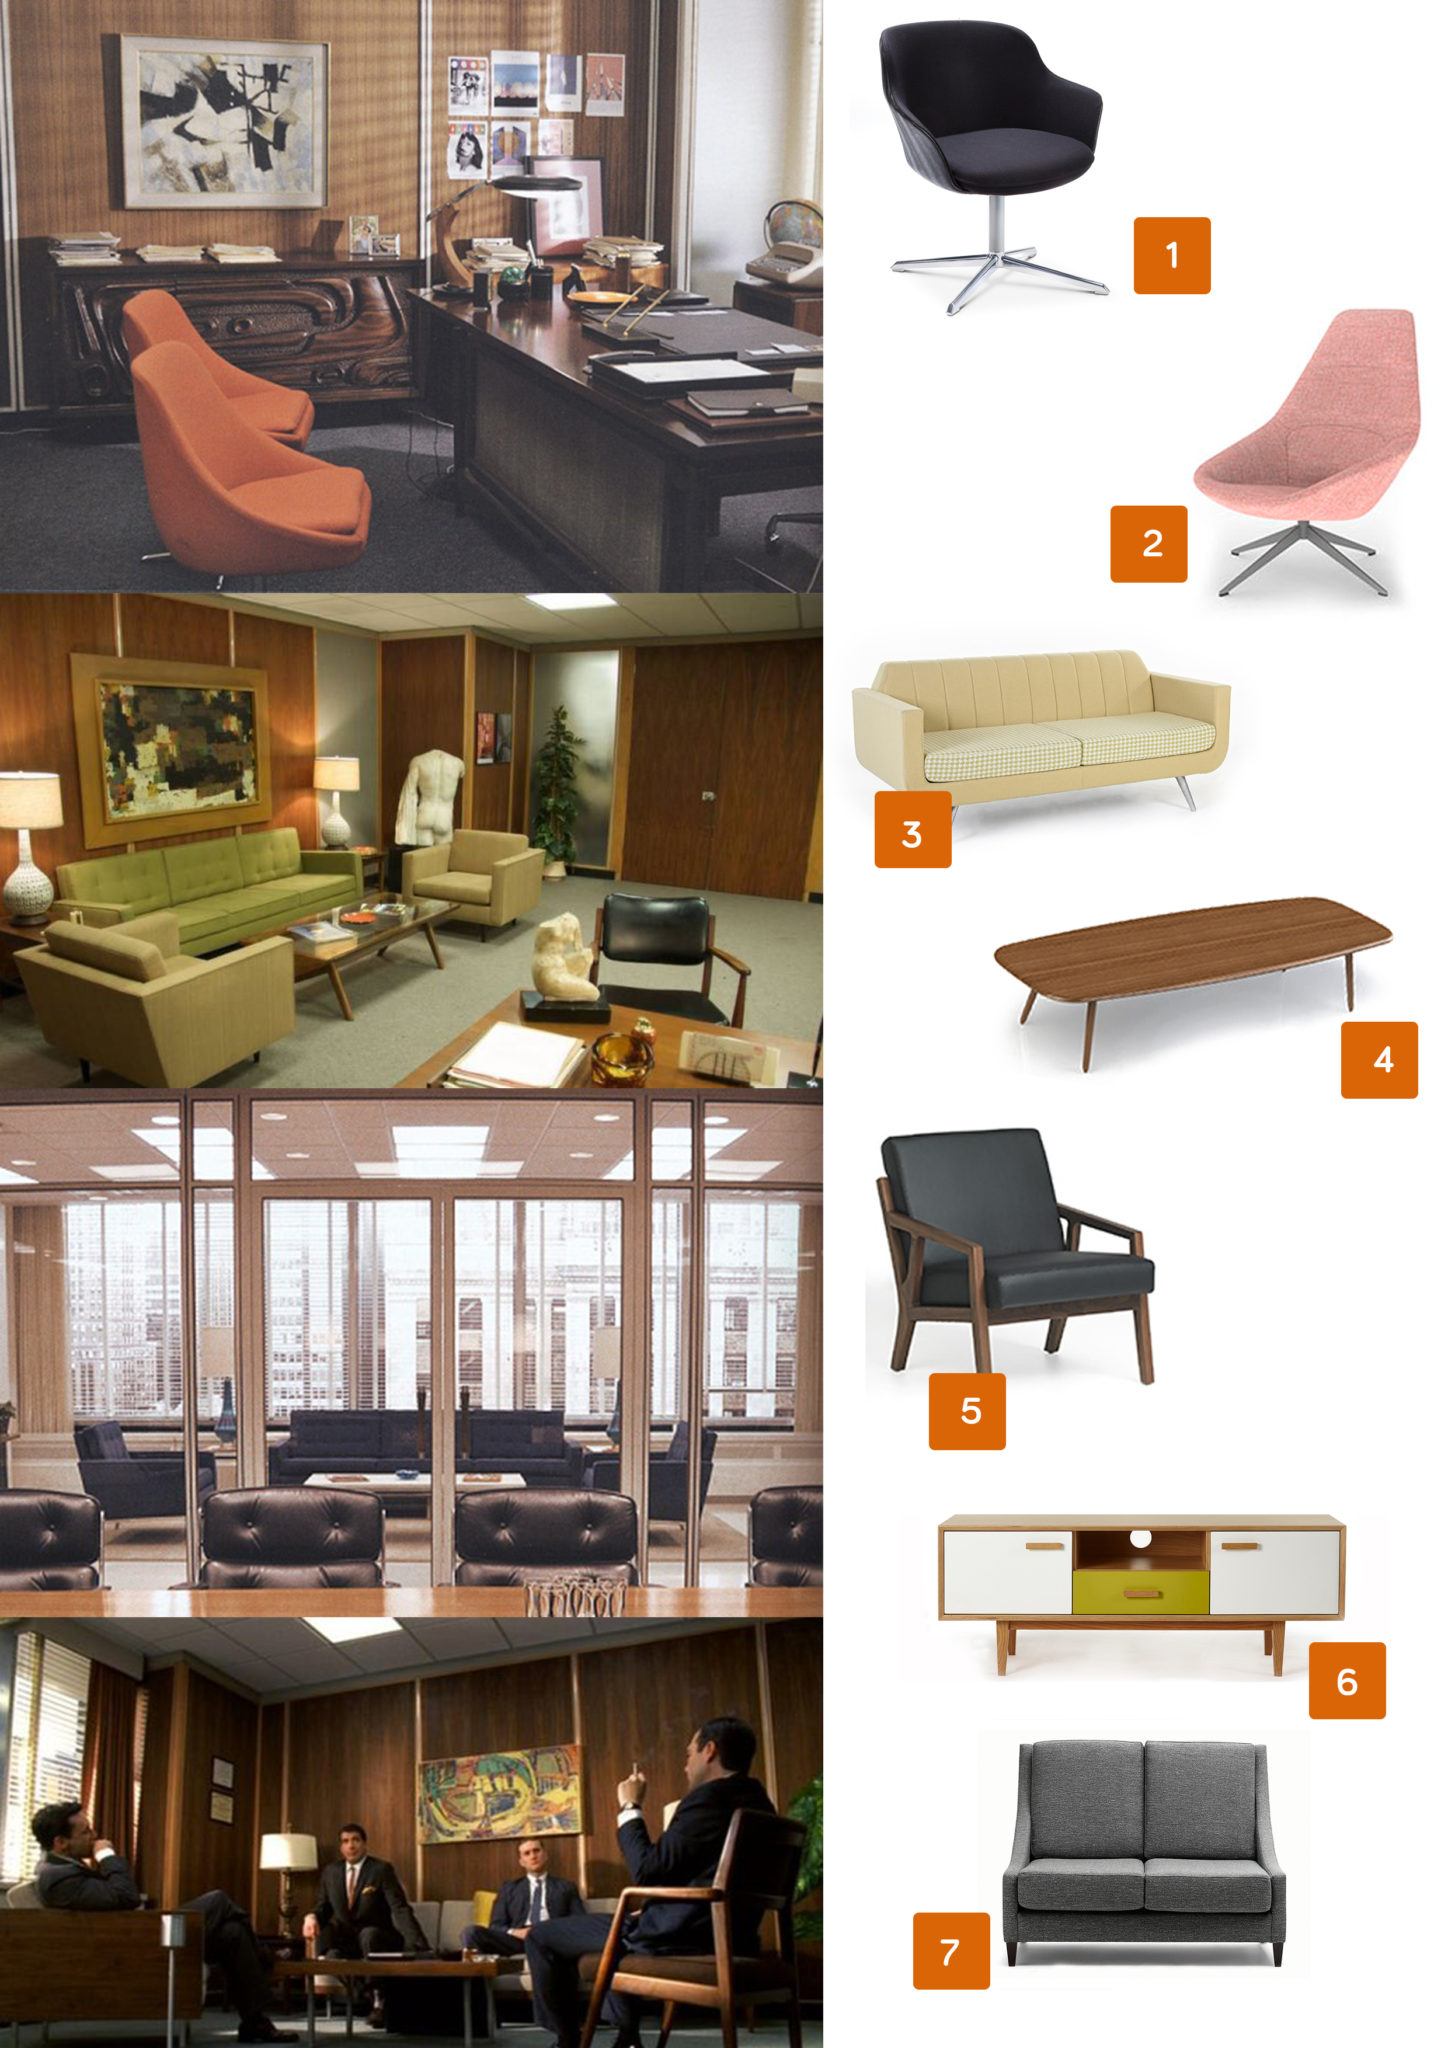 Mad men offices, mid century modern furniture, eames, retro office furniture, 60s, brighton